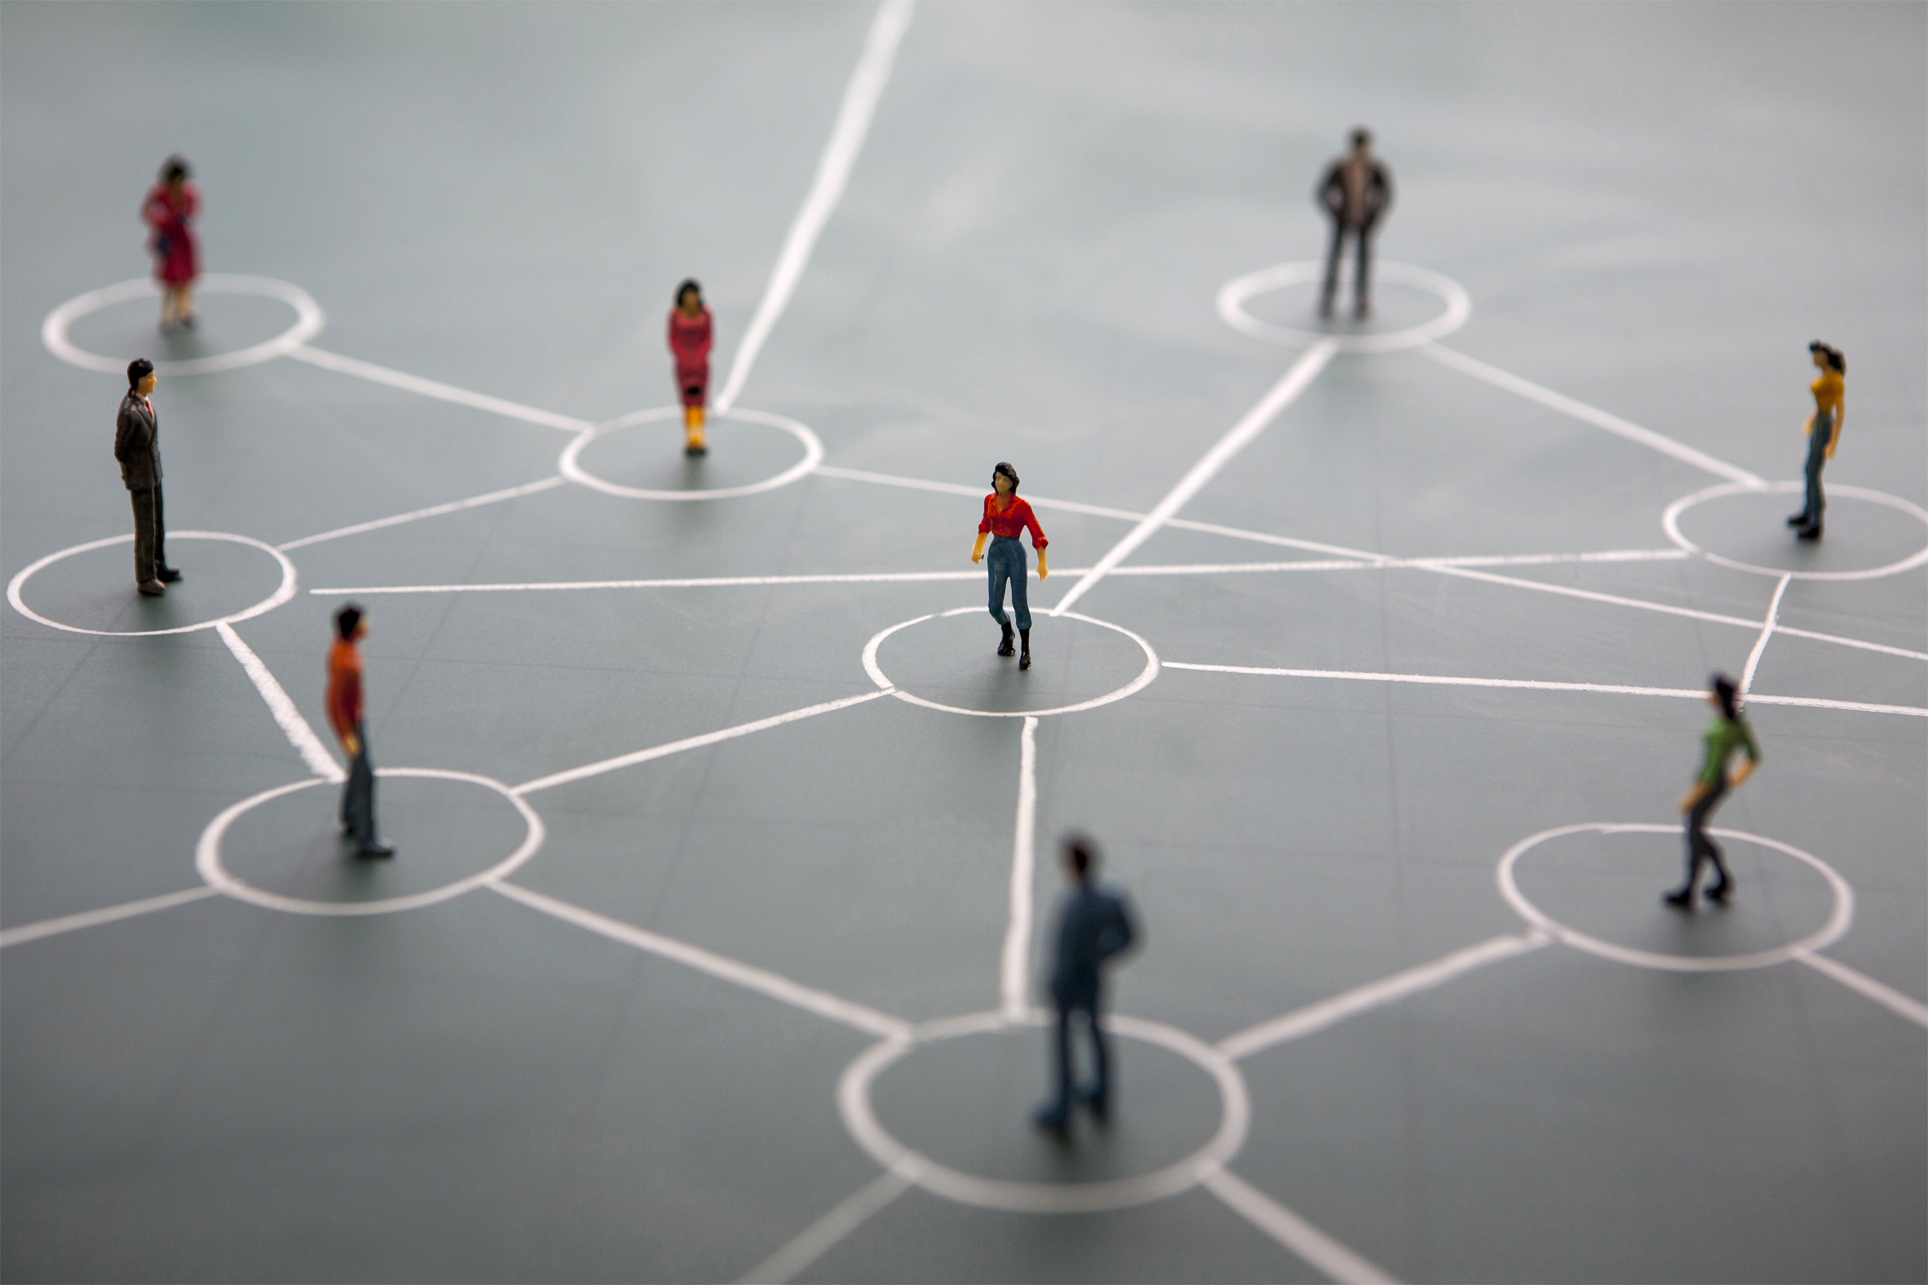 miniature model people standing on drawn chalk network